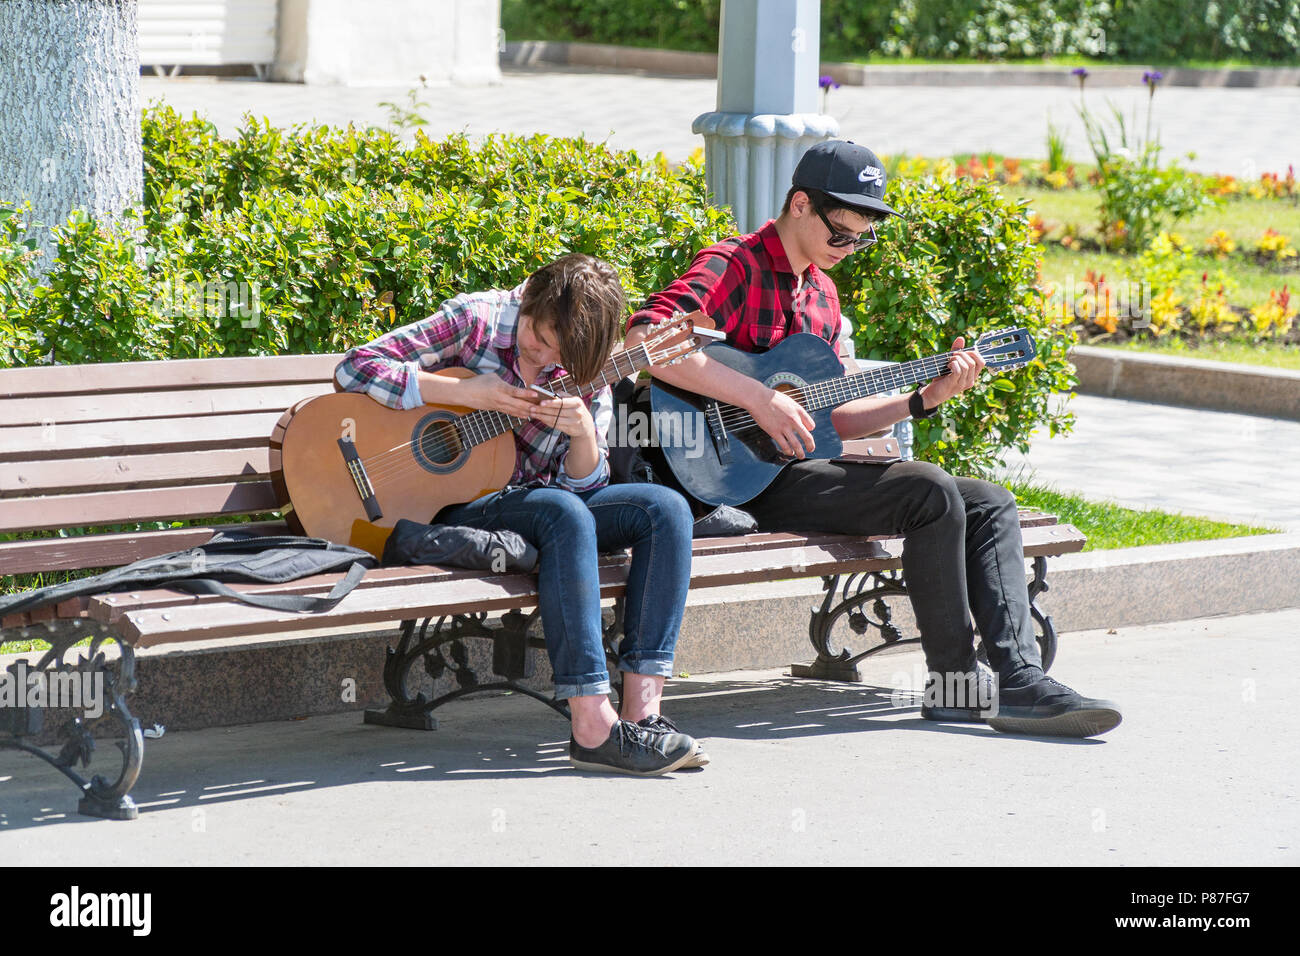 SAMARA, RUSSIA - JUNE 21, 2018: Two young street musicians with guitars on a Park bench - Stock Image